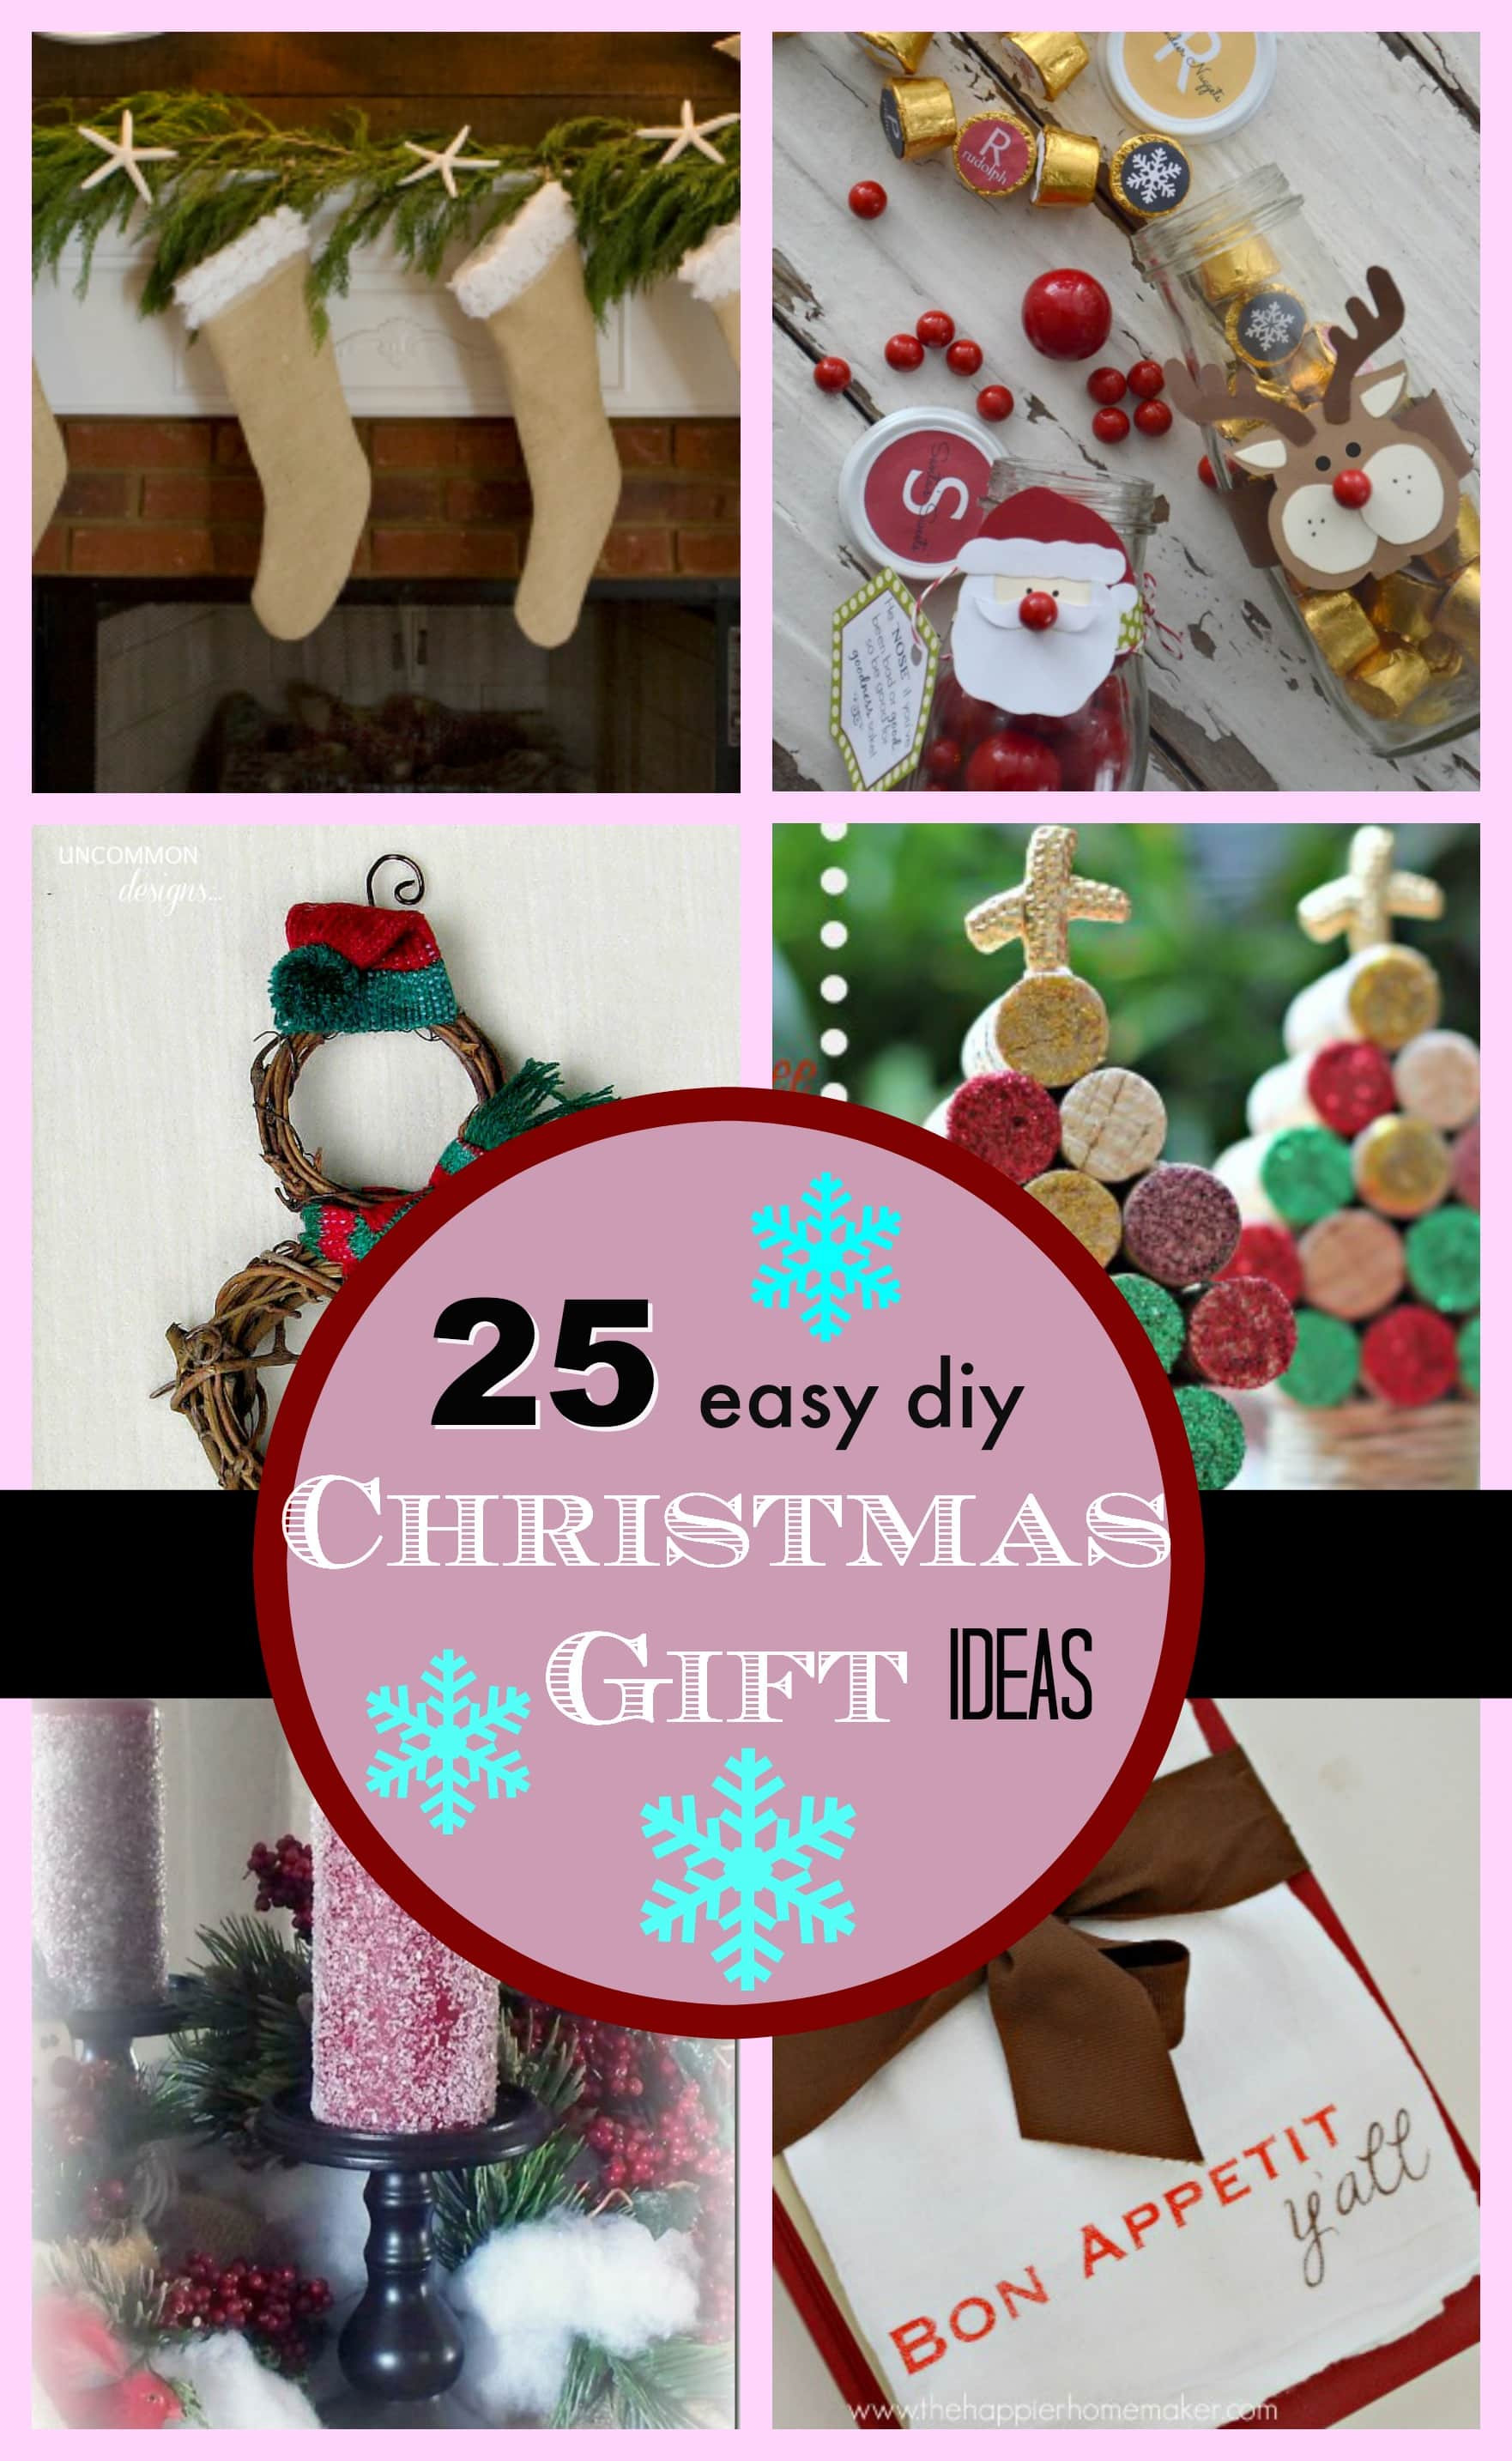 Best ideas about Christmas DIY Ideas . Save or Pin 25 DIY Easy Christmas Gift Ideas PinkWhen Now.